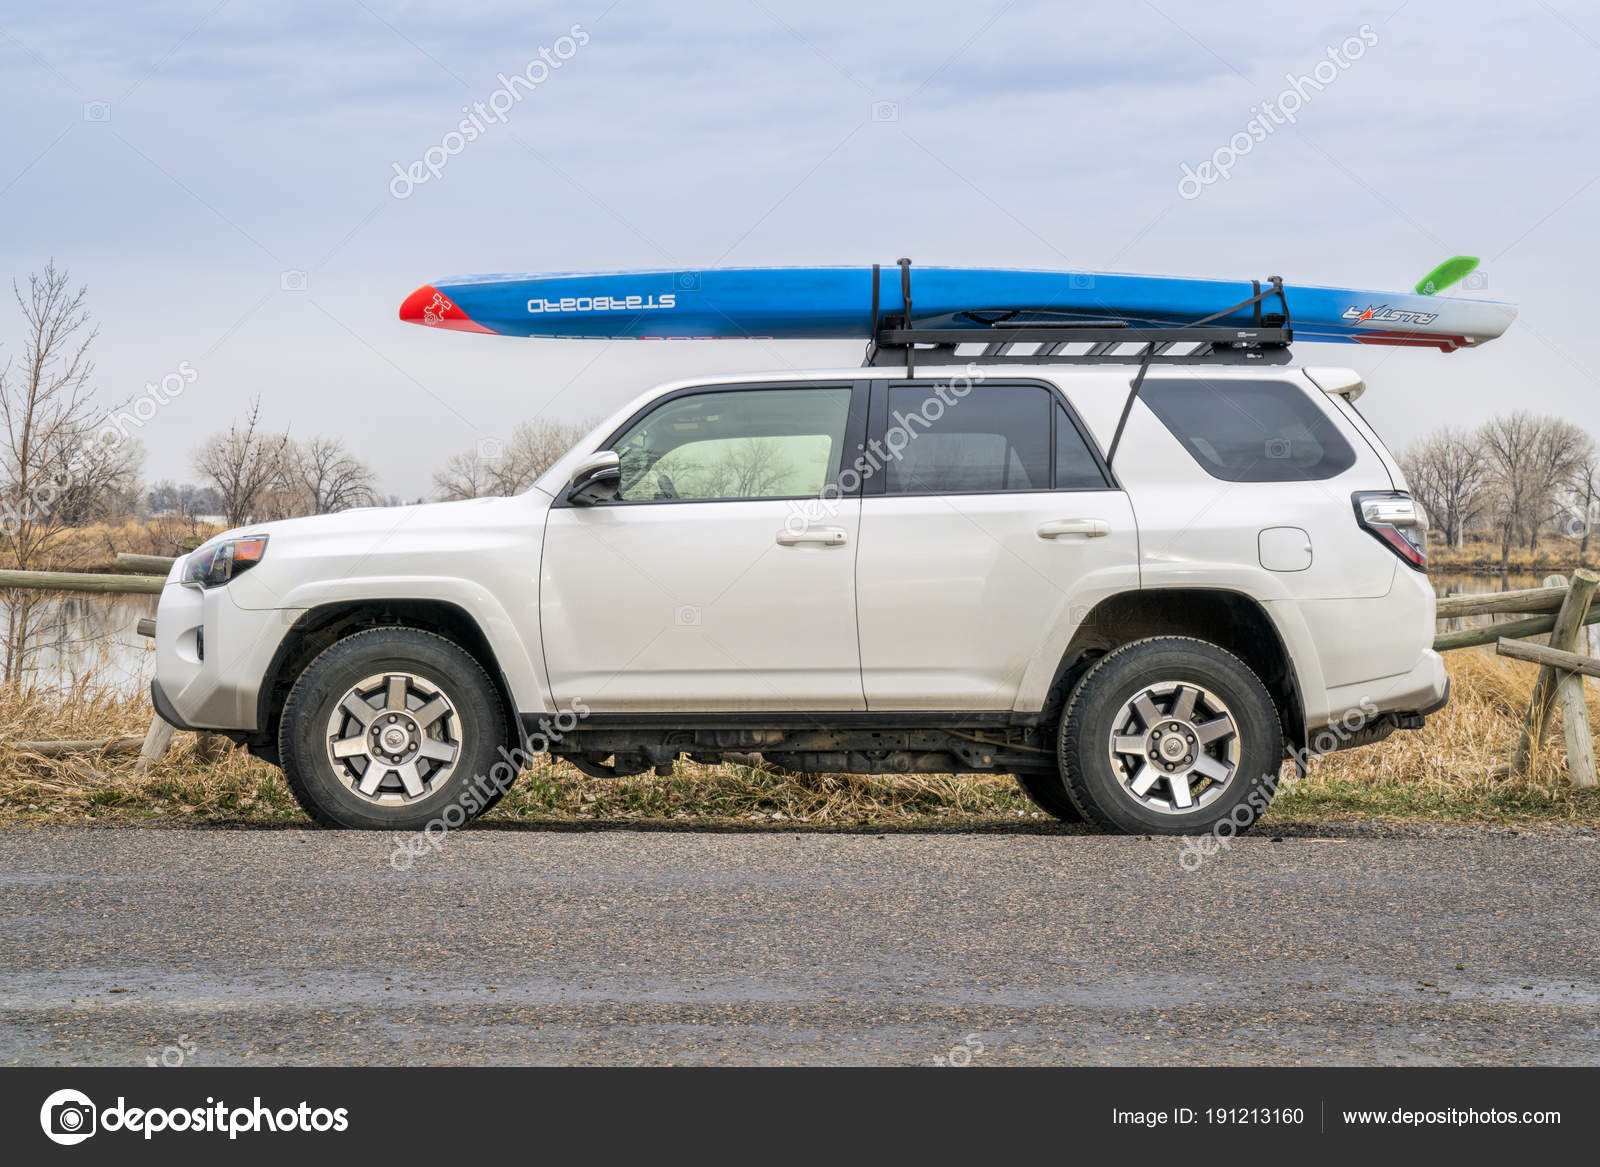 racing paddleboard on roof of toyota 4runner suv stock editorial photo c pixelsaway 191213160